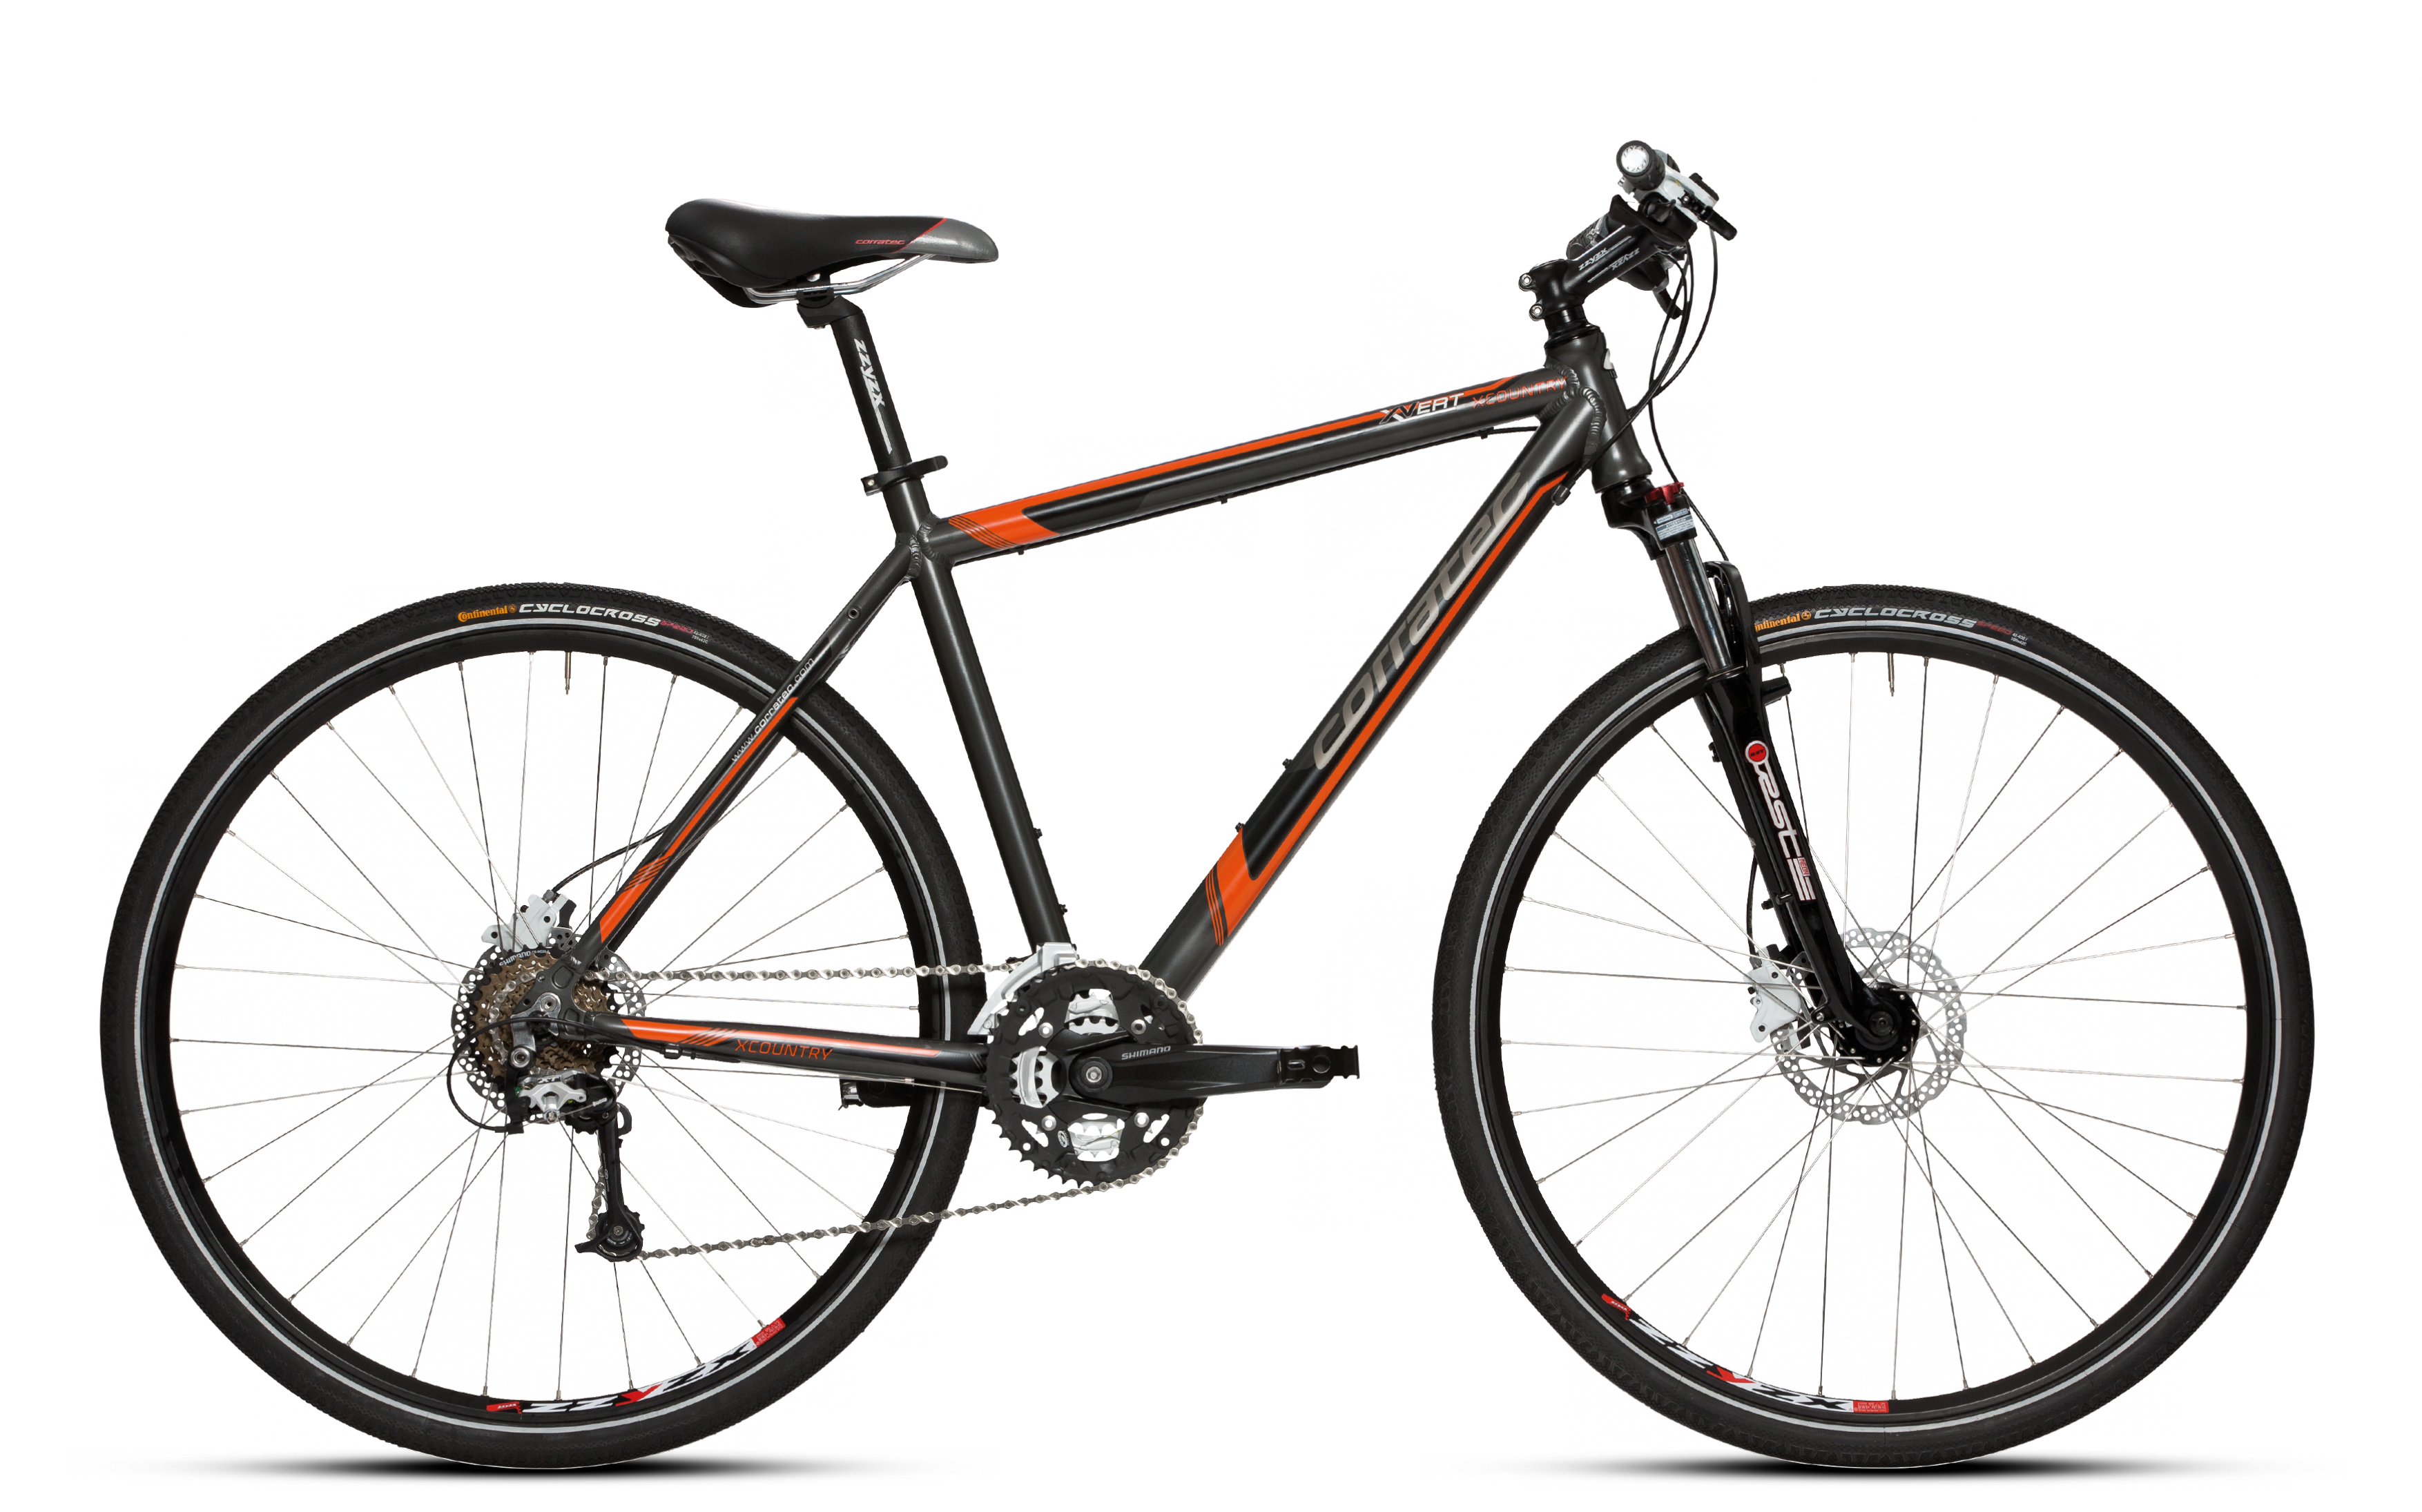 Mountain bike png. Bicycles images free download